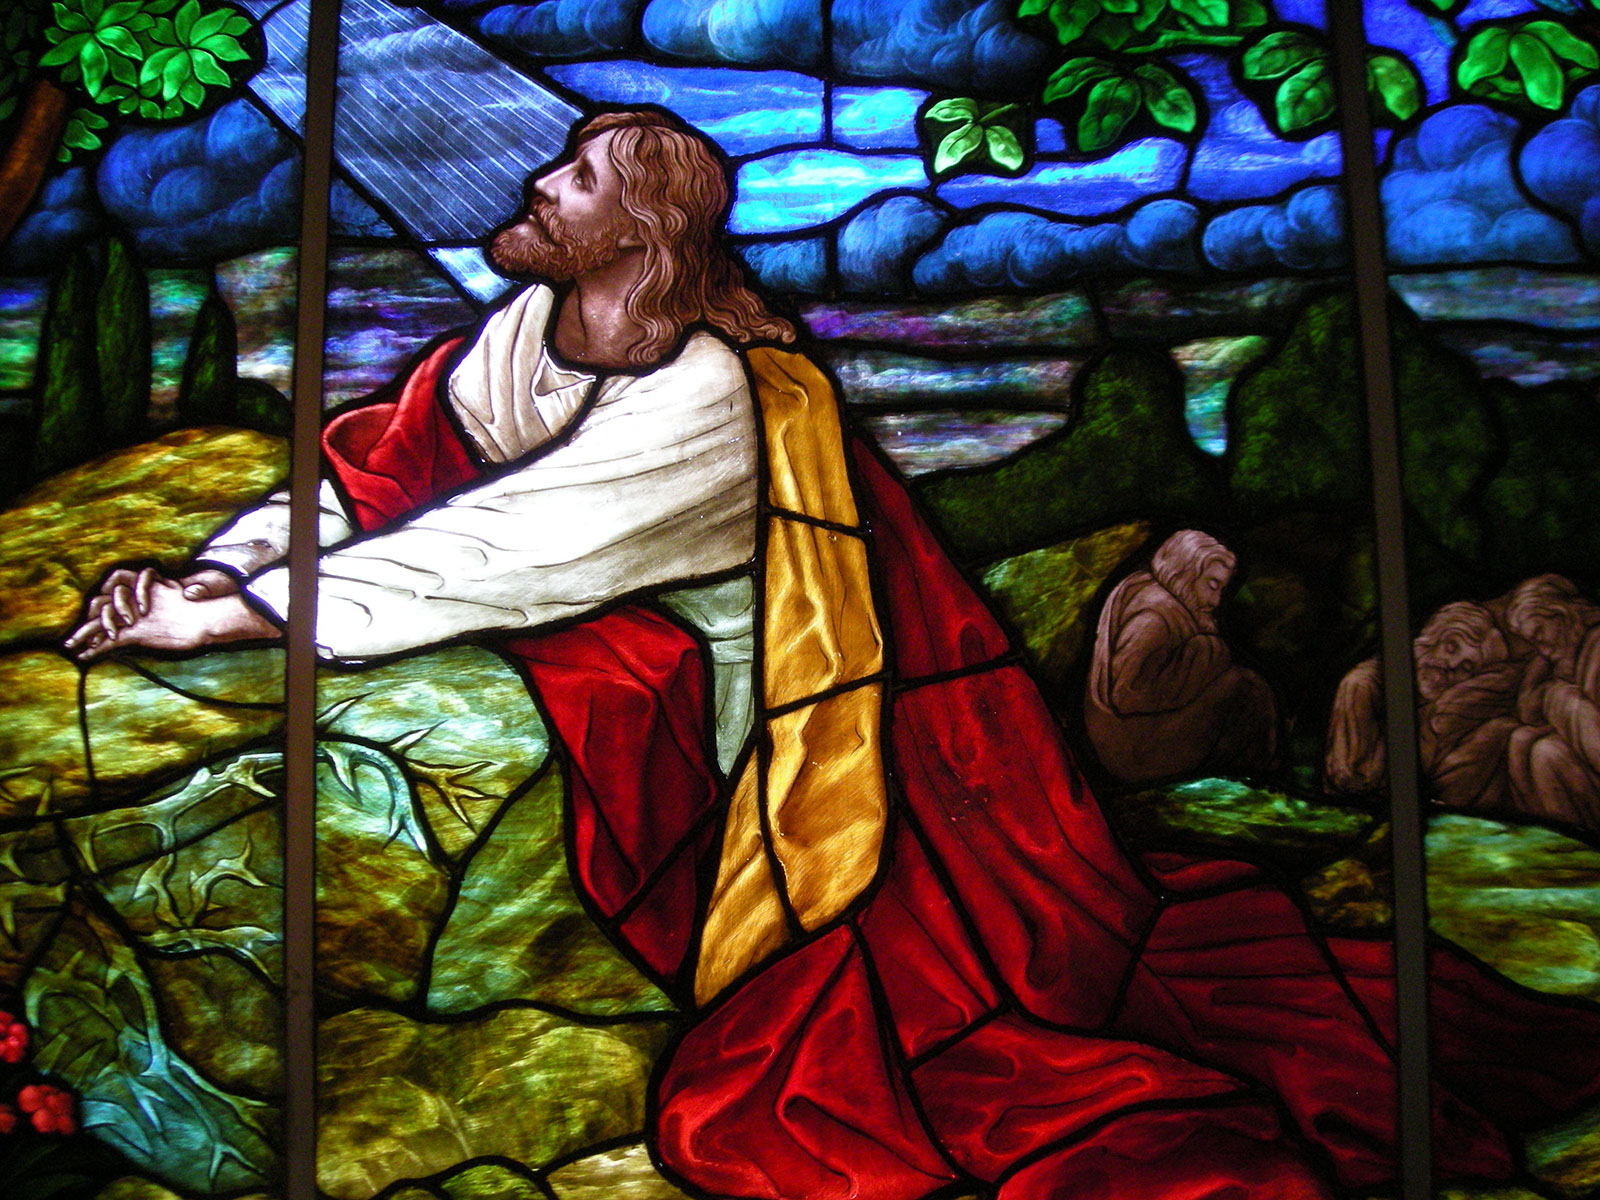 Garden of gethsemane pax christi usa Jesus praying in the garden of gethsemane